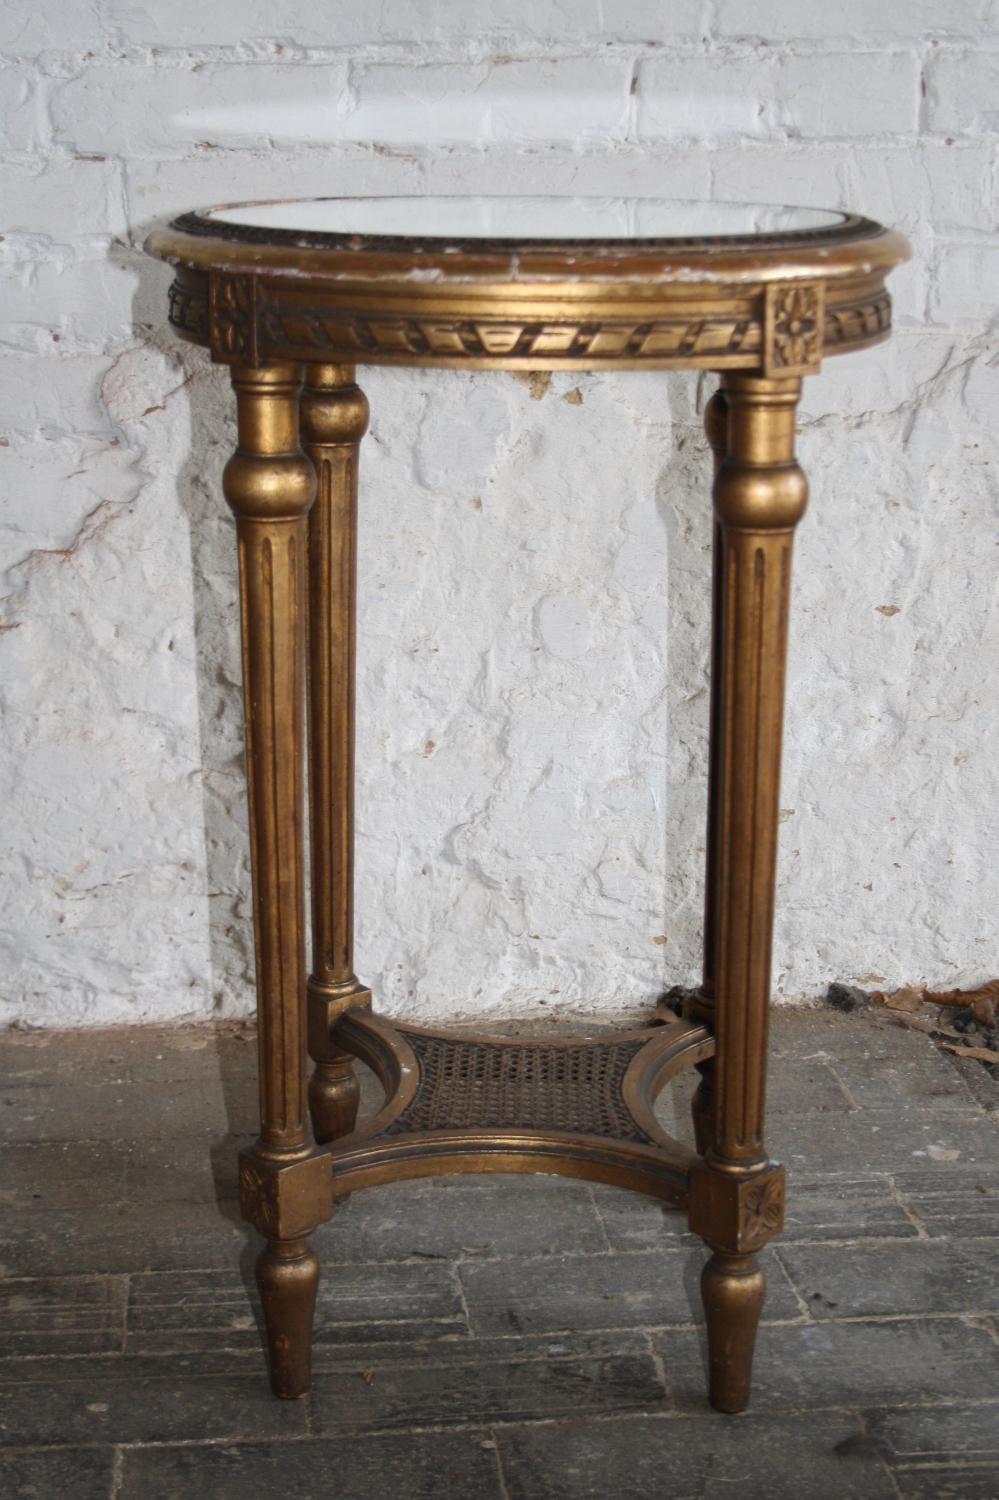 Antique gilt bergere French table